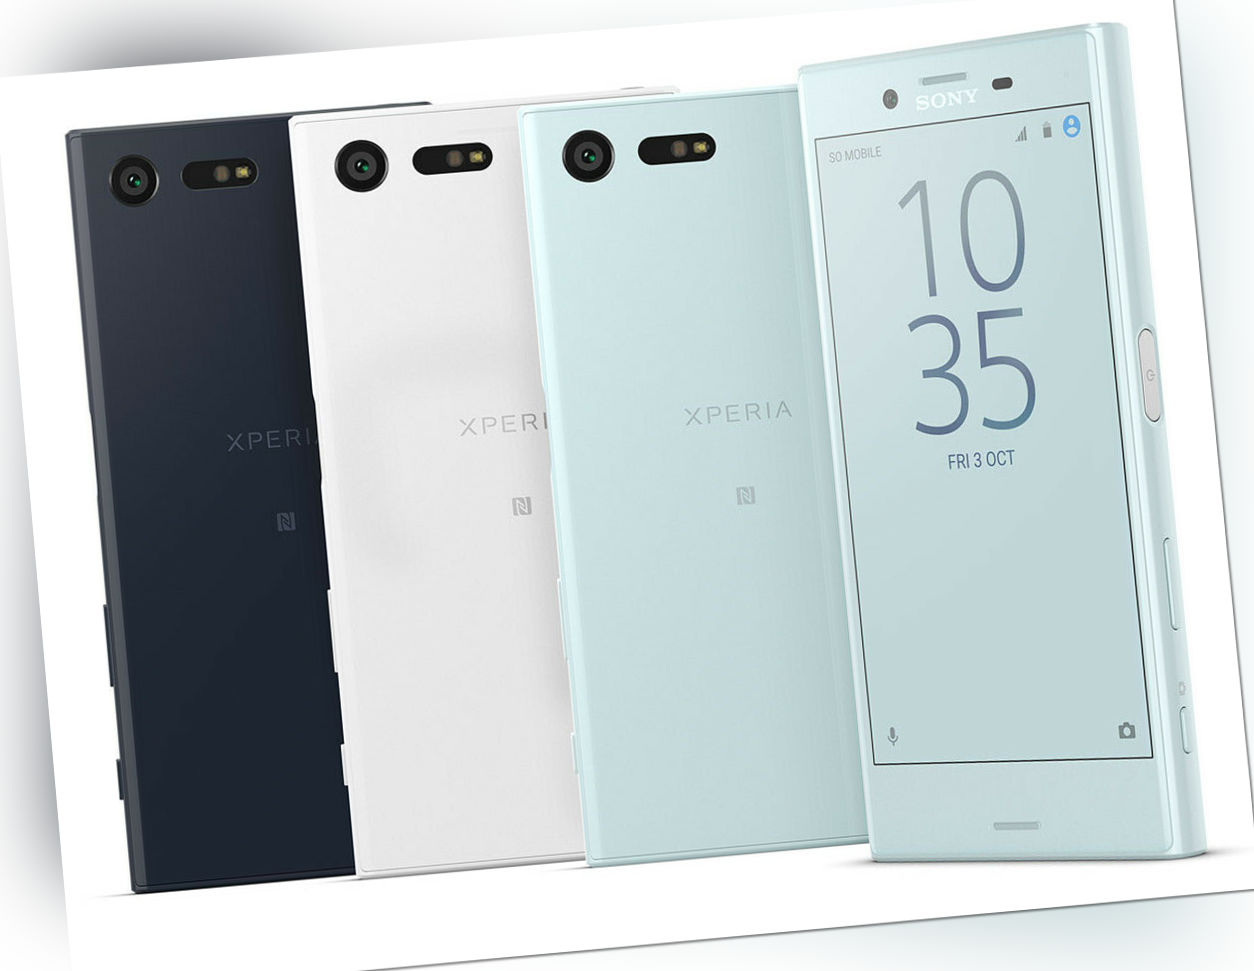 Sony Xperia X Compact 32GB Android Smartphone 4,6 Zoll 23 MP Kamera Gebraucht